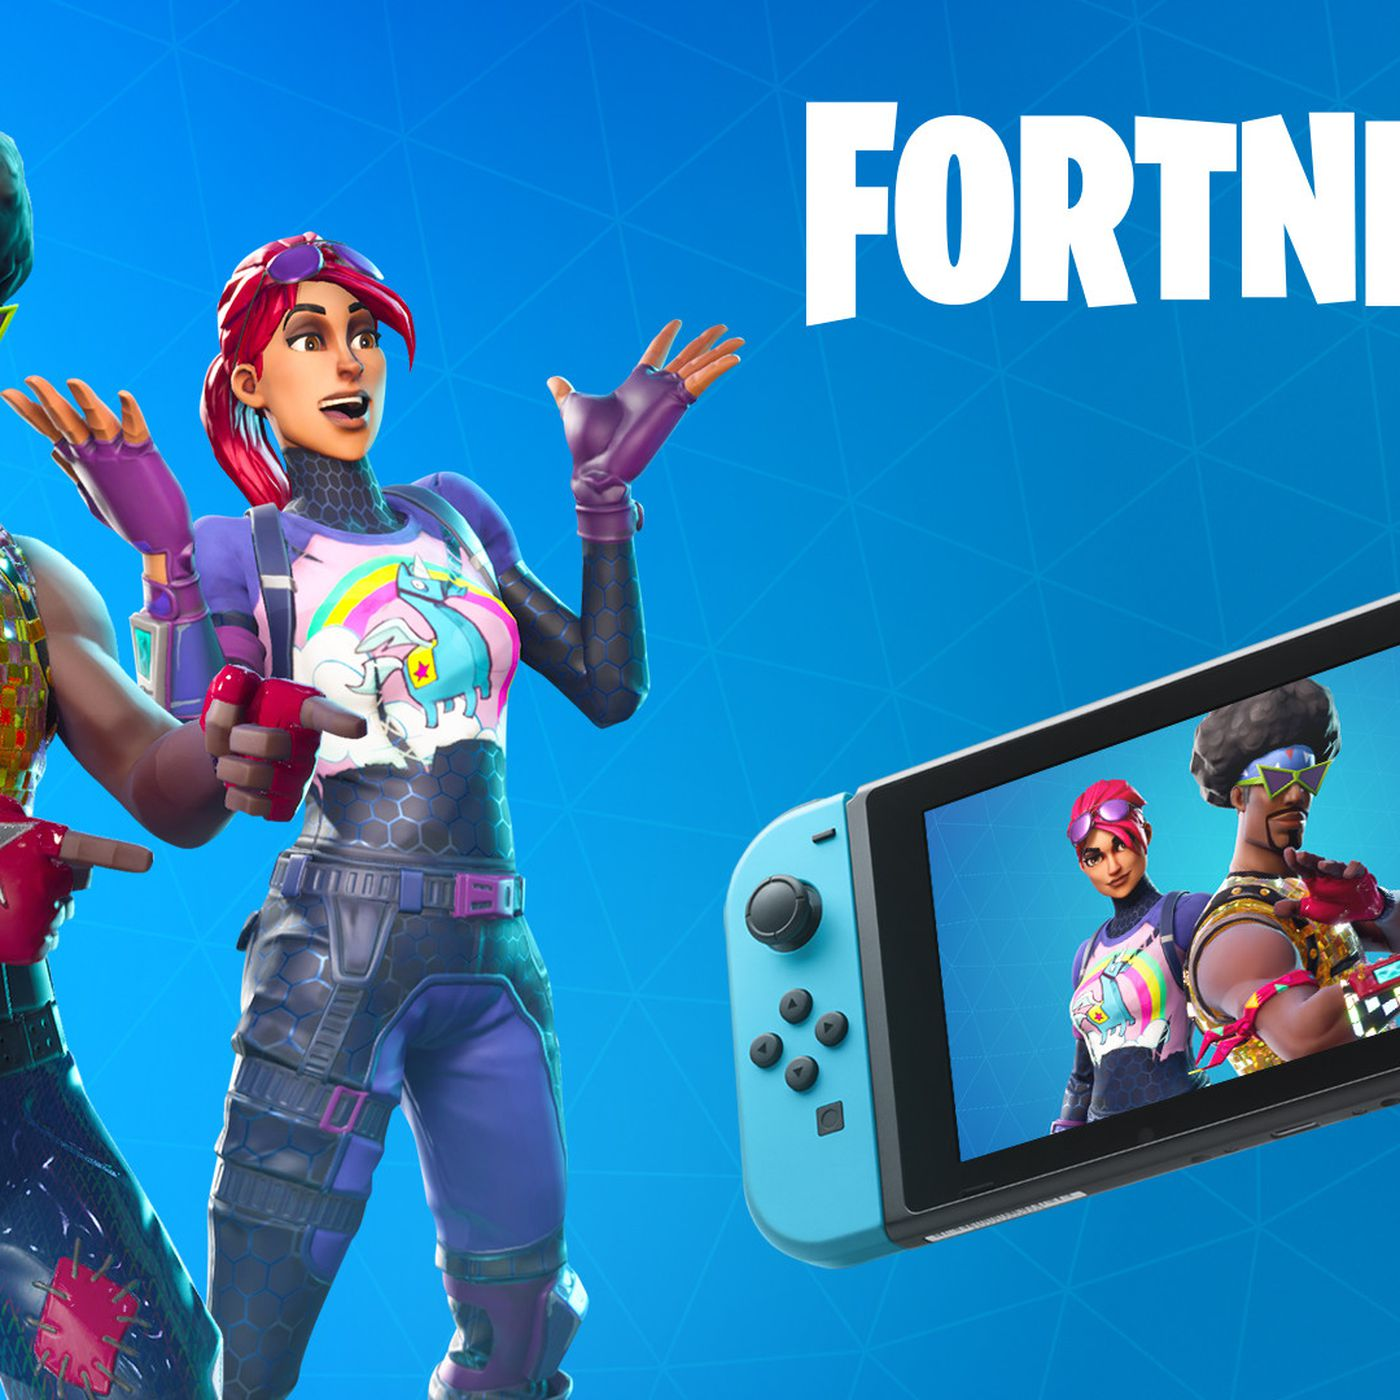 Sony Enabling Fortnite Cross Play For Ps4 Against Xbox And